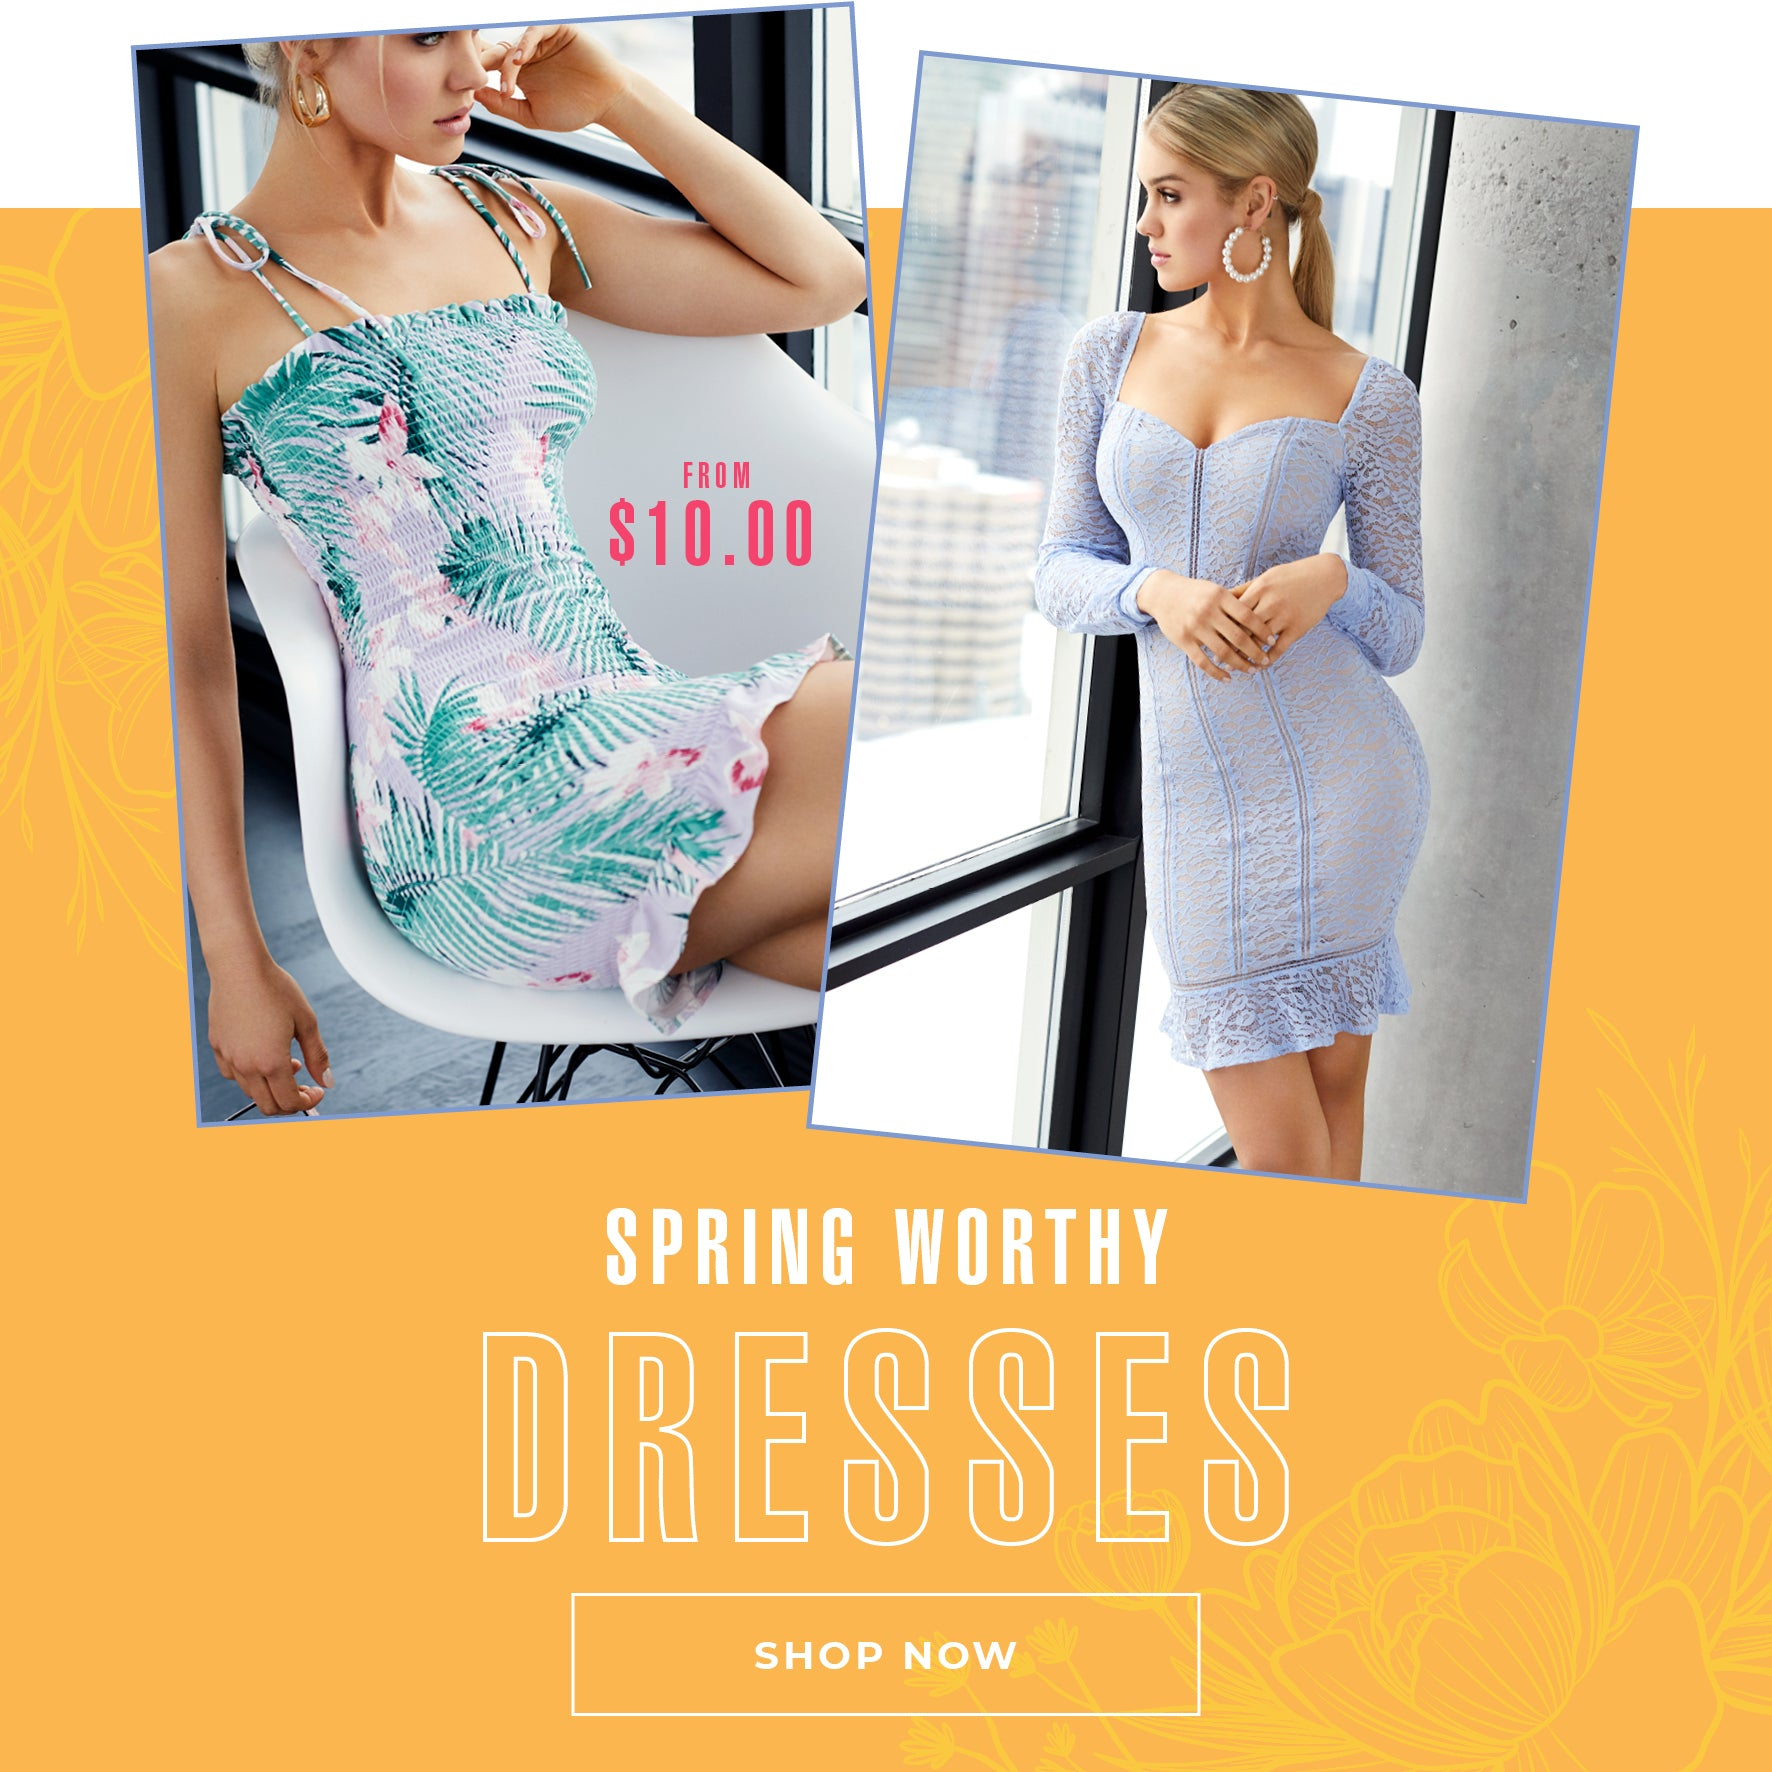 Charlotte Russe | From $10.00 - Spring Worthy Dresses - Shop Now